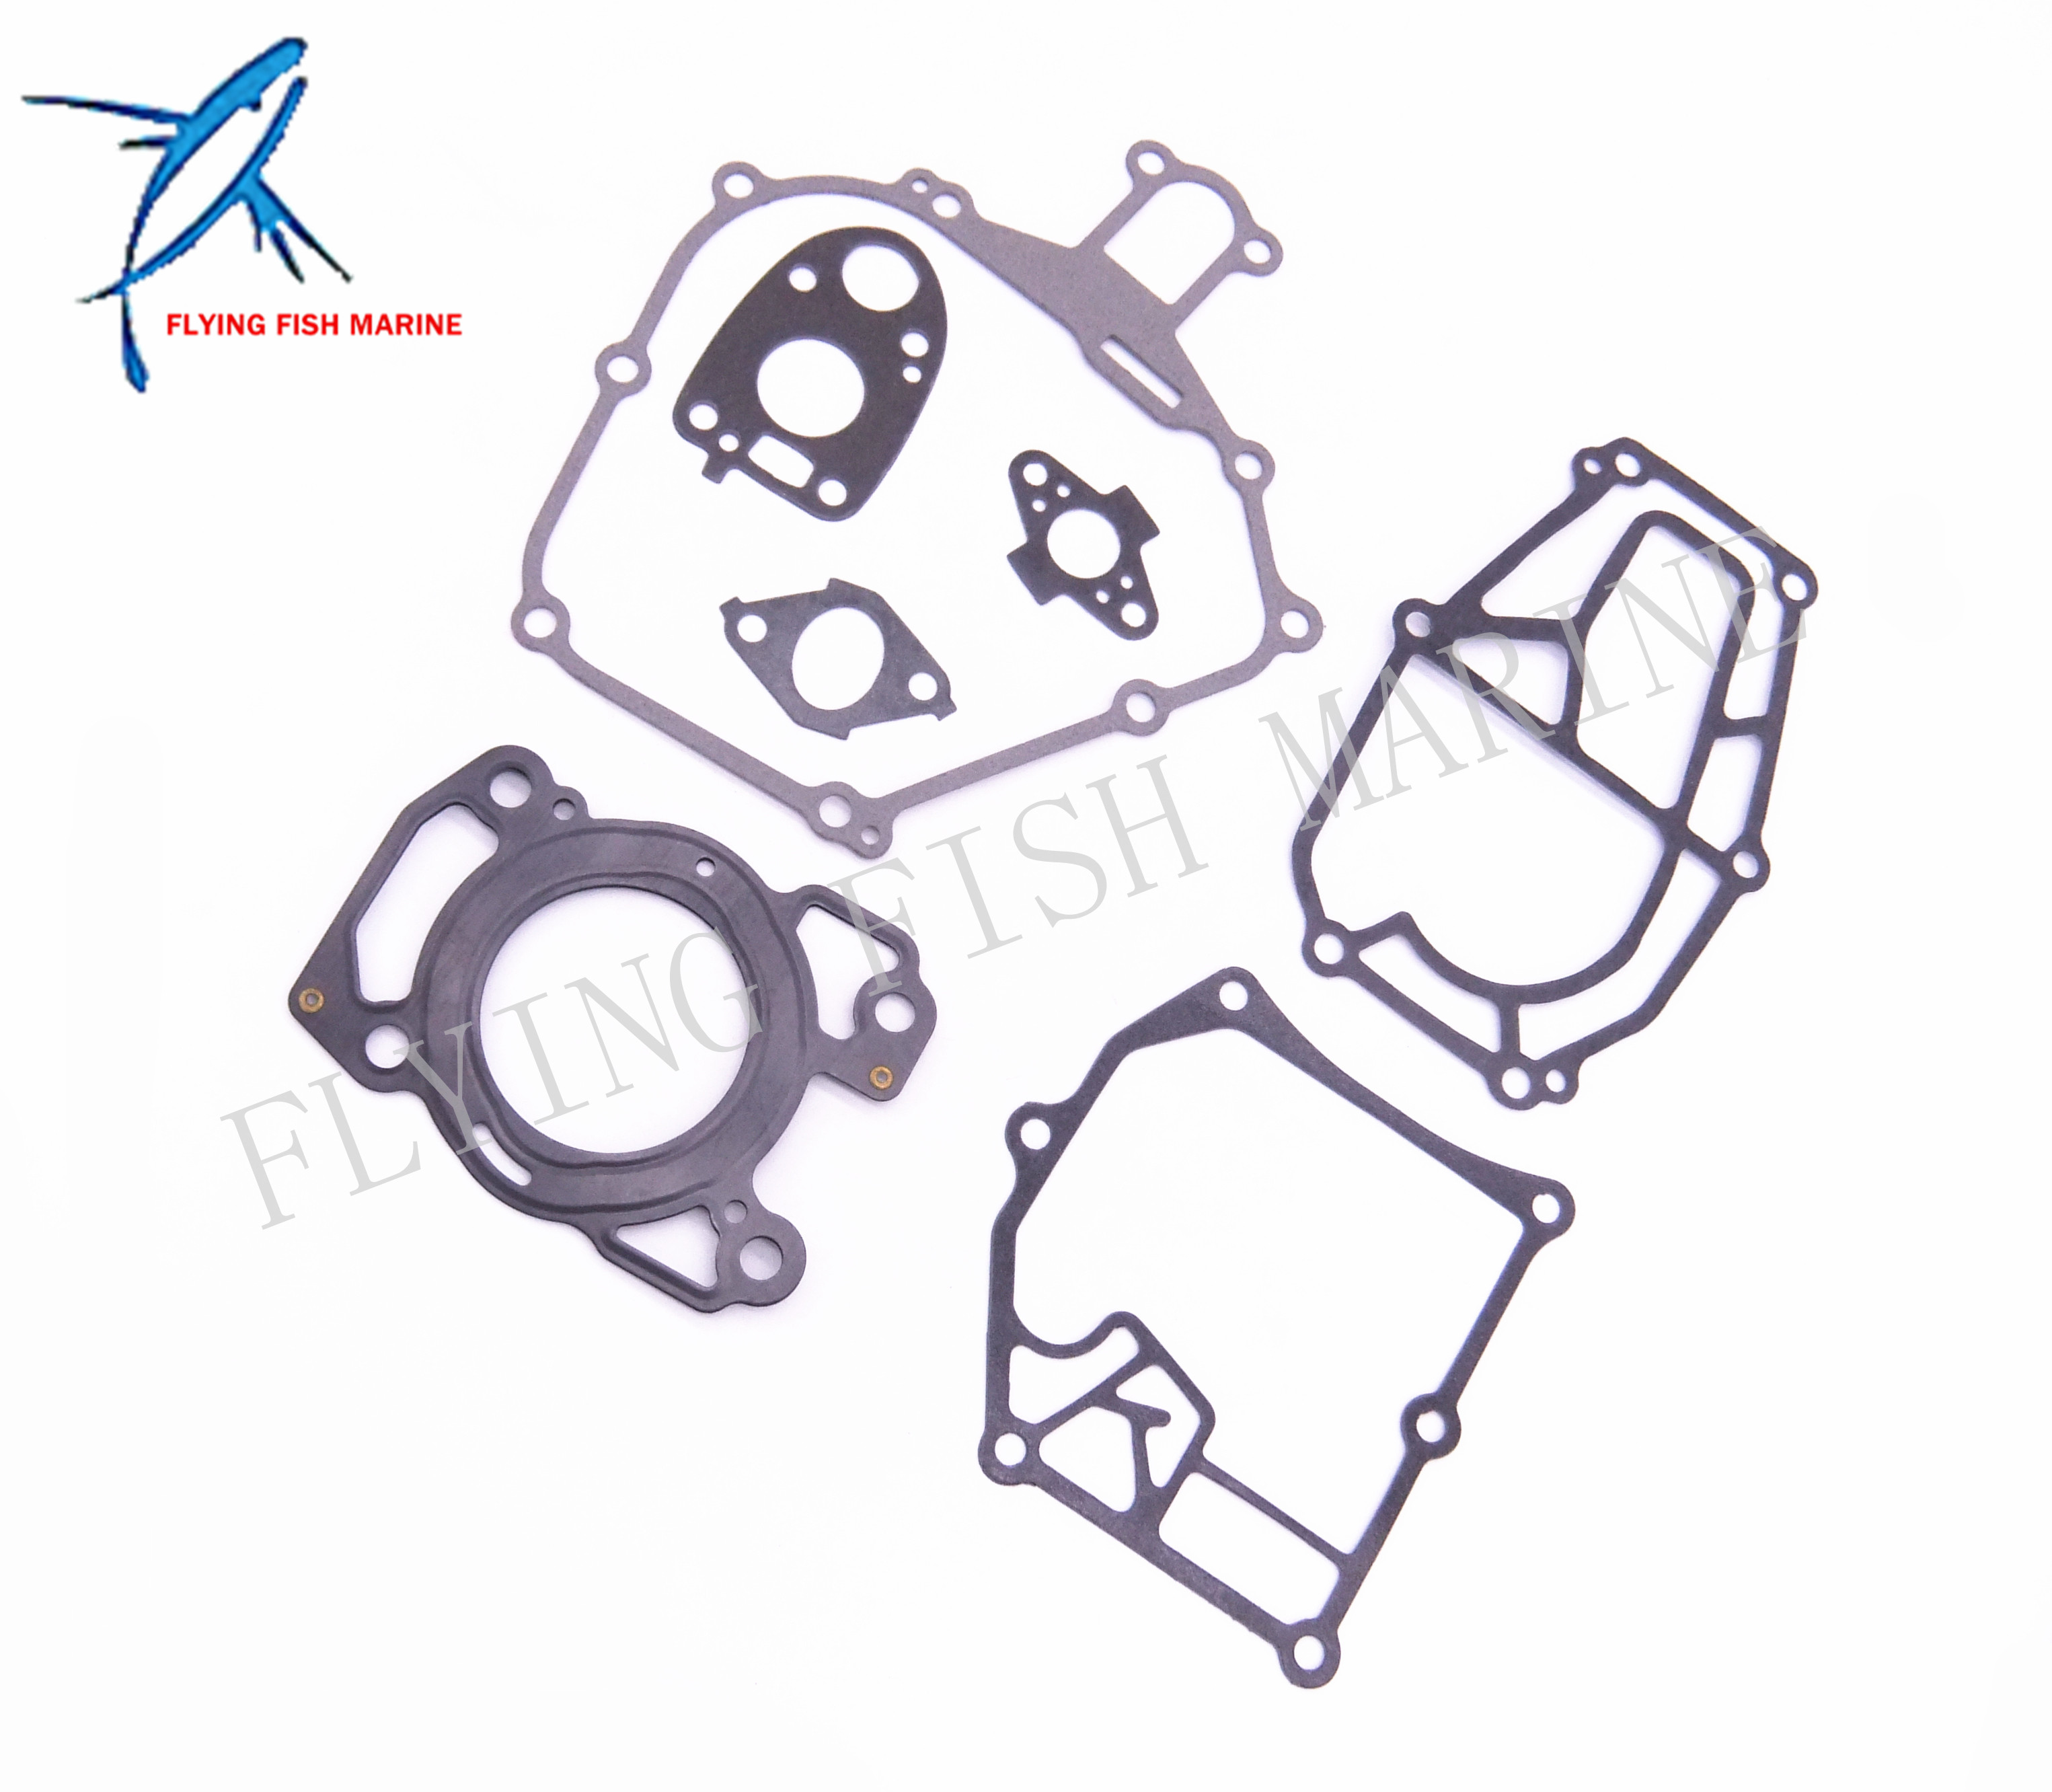 Complete Power Head Seal Gasket Kit Outboard Engine Boat Motor for Yamaha F2.5 Free Shipping